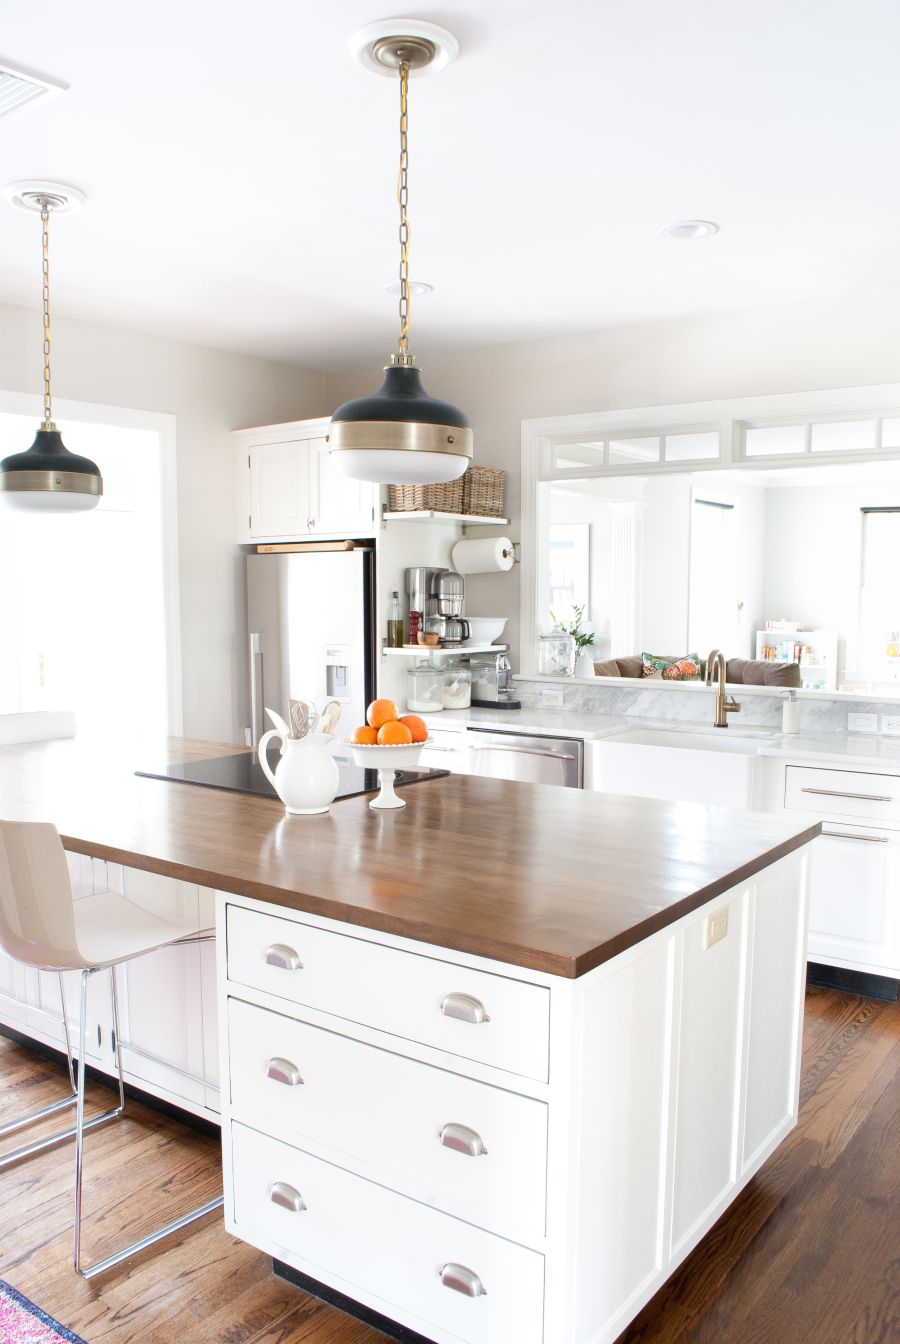 Eclectic Home Tour The Chronicles Of Home I Want My Kitchen To